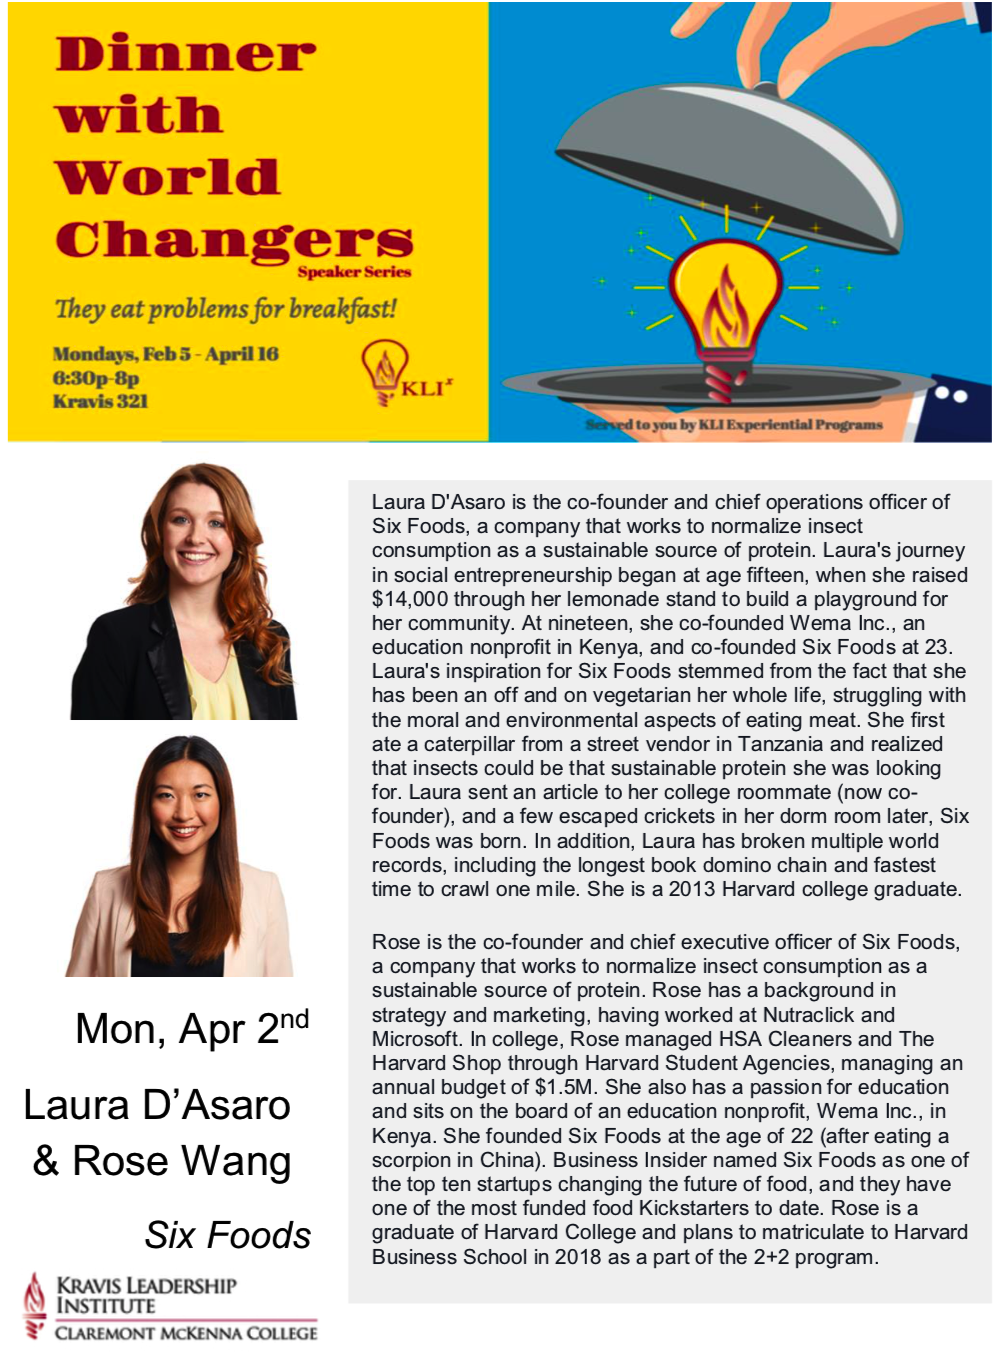 4/2 Dinner With World Changers - Laura D'Asaro and Rose Wang